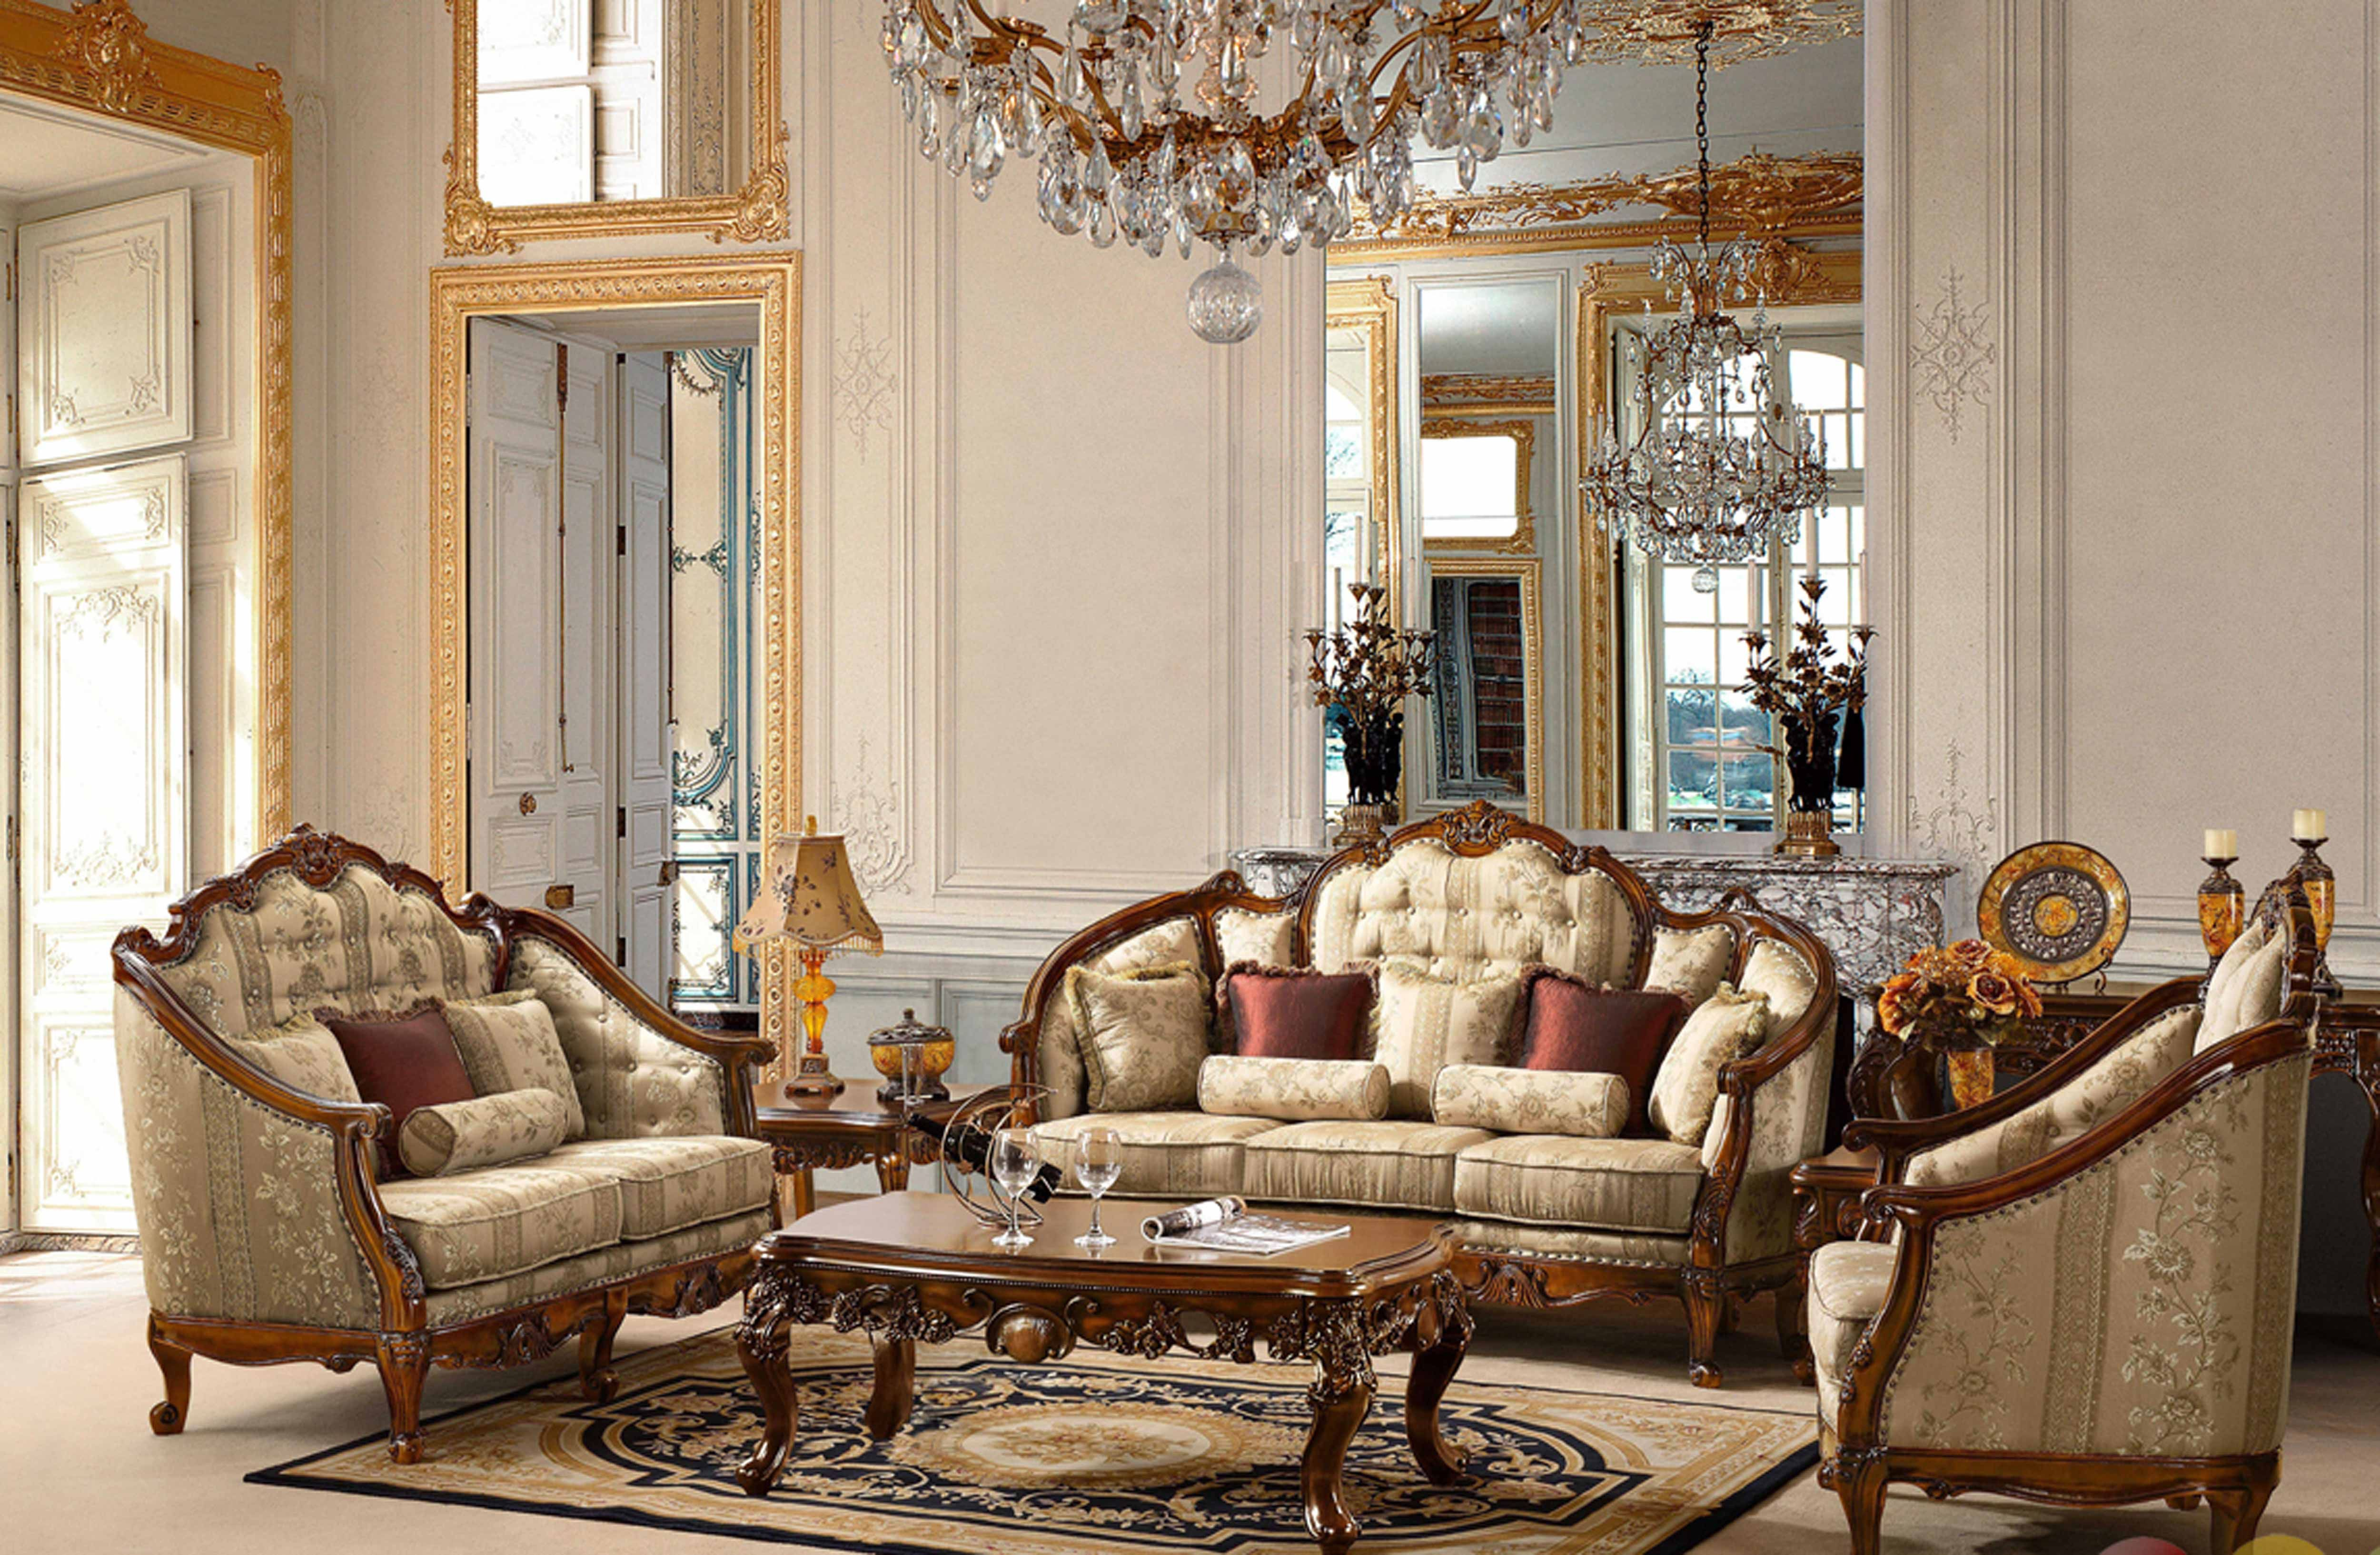 The Living Room Has A Beautiful And Expensive And Elegant Classic Captivating Luxury Living Rooms Furniture 2018